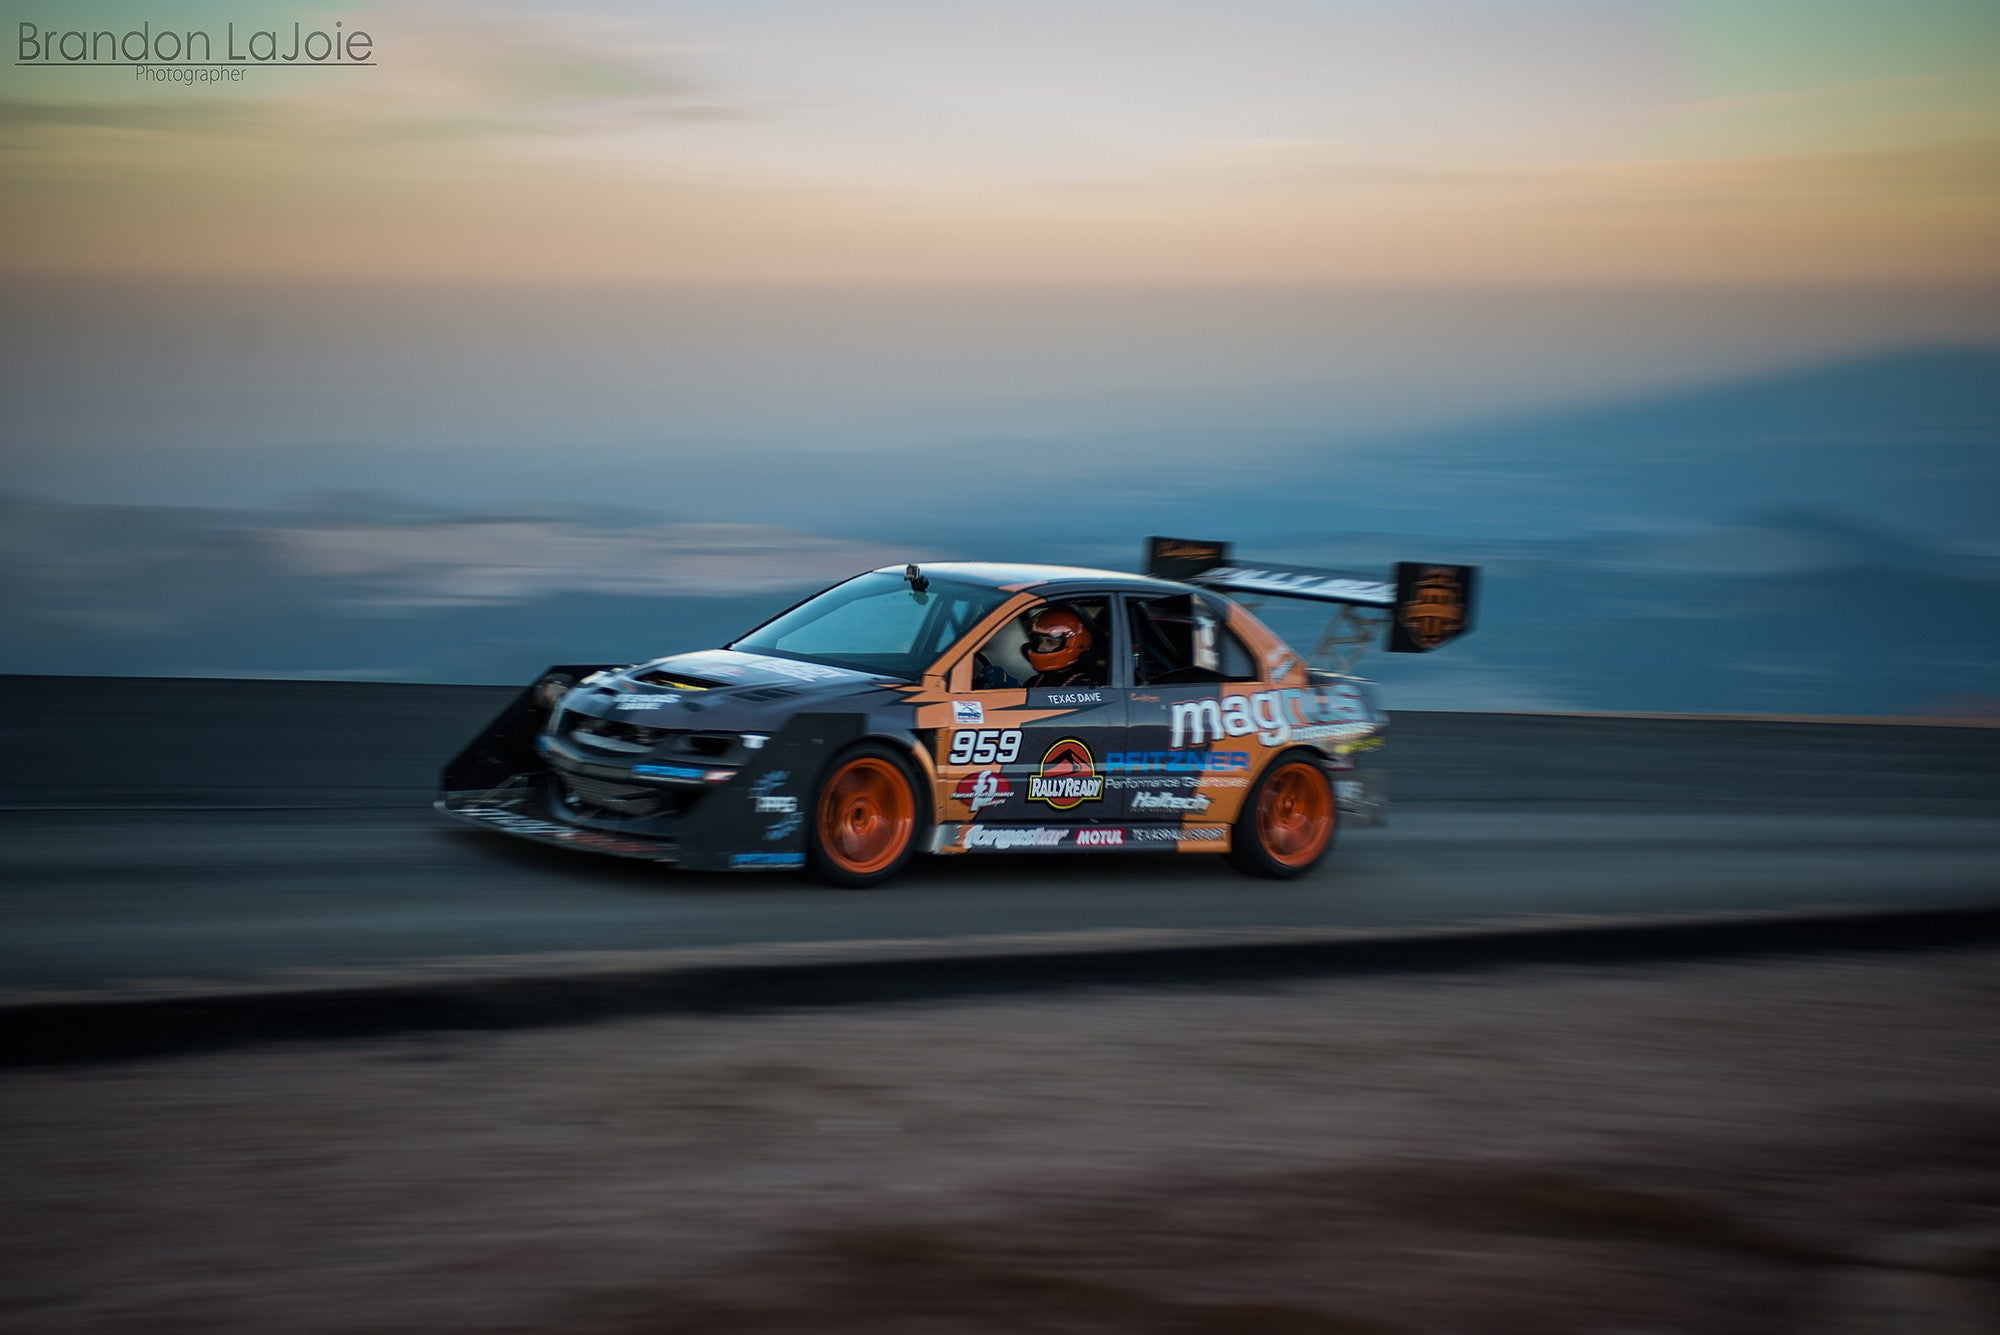 RALLY READY DRIVERS AT PPIHC 2014